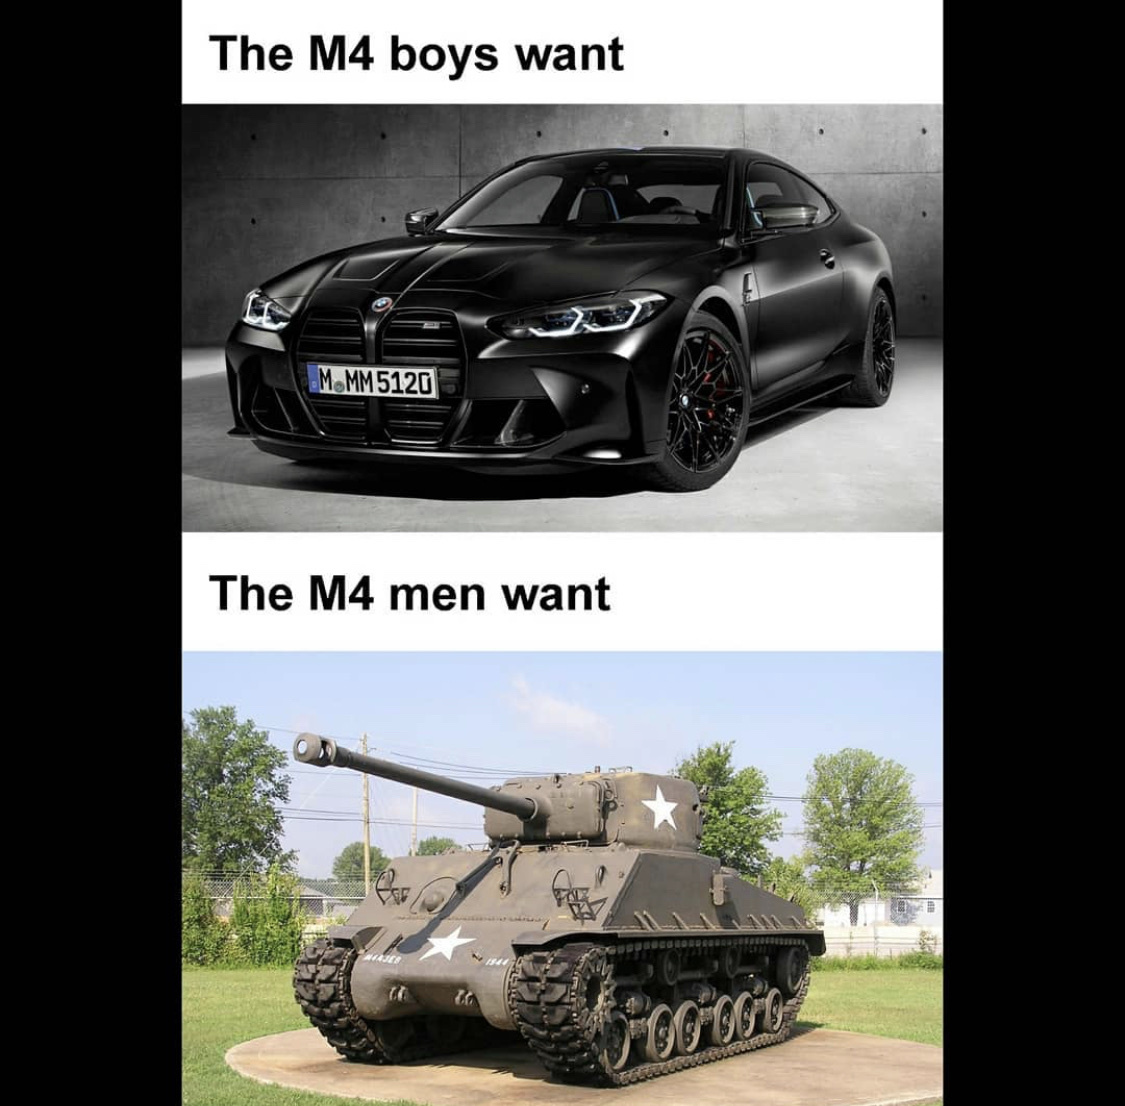 an added bonus when the bmw tailgates you can just rotate the turret and yeet it - meme